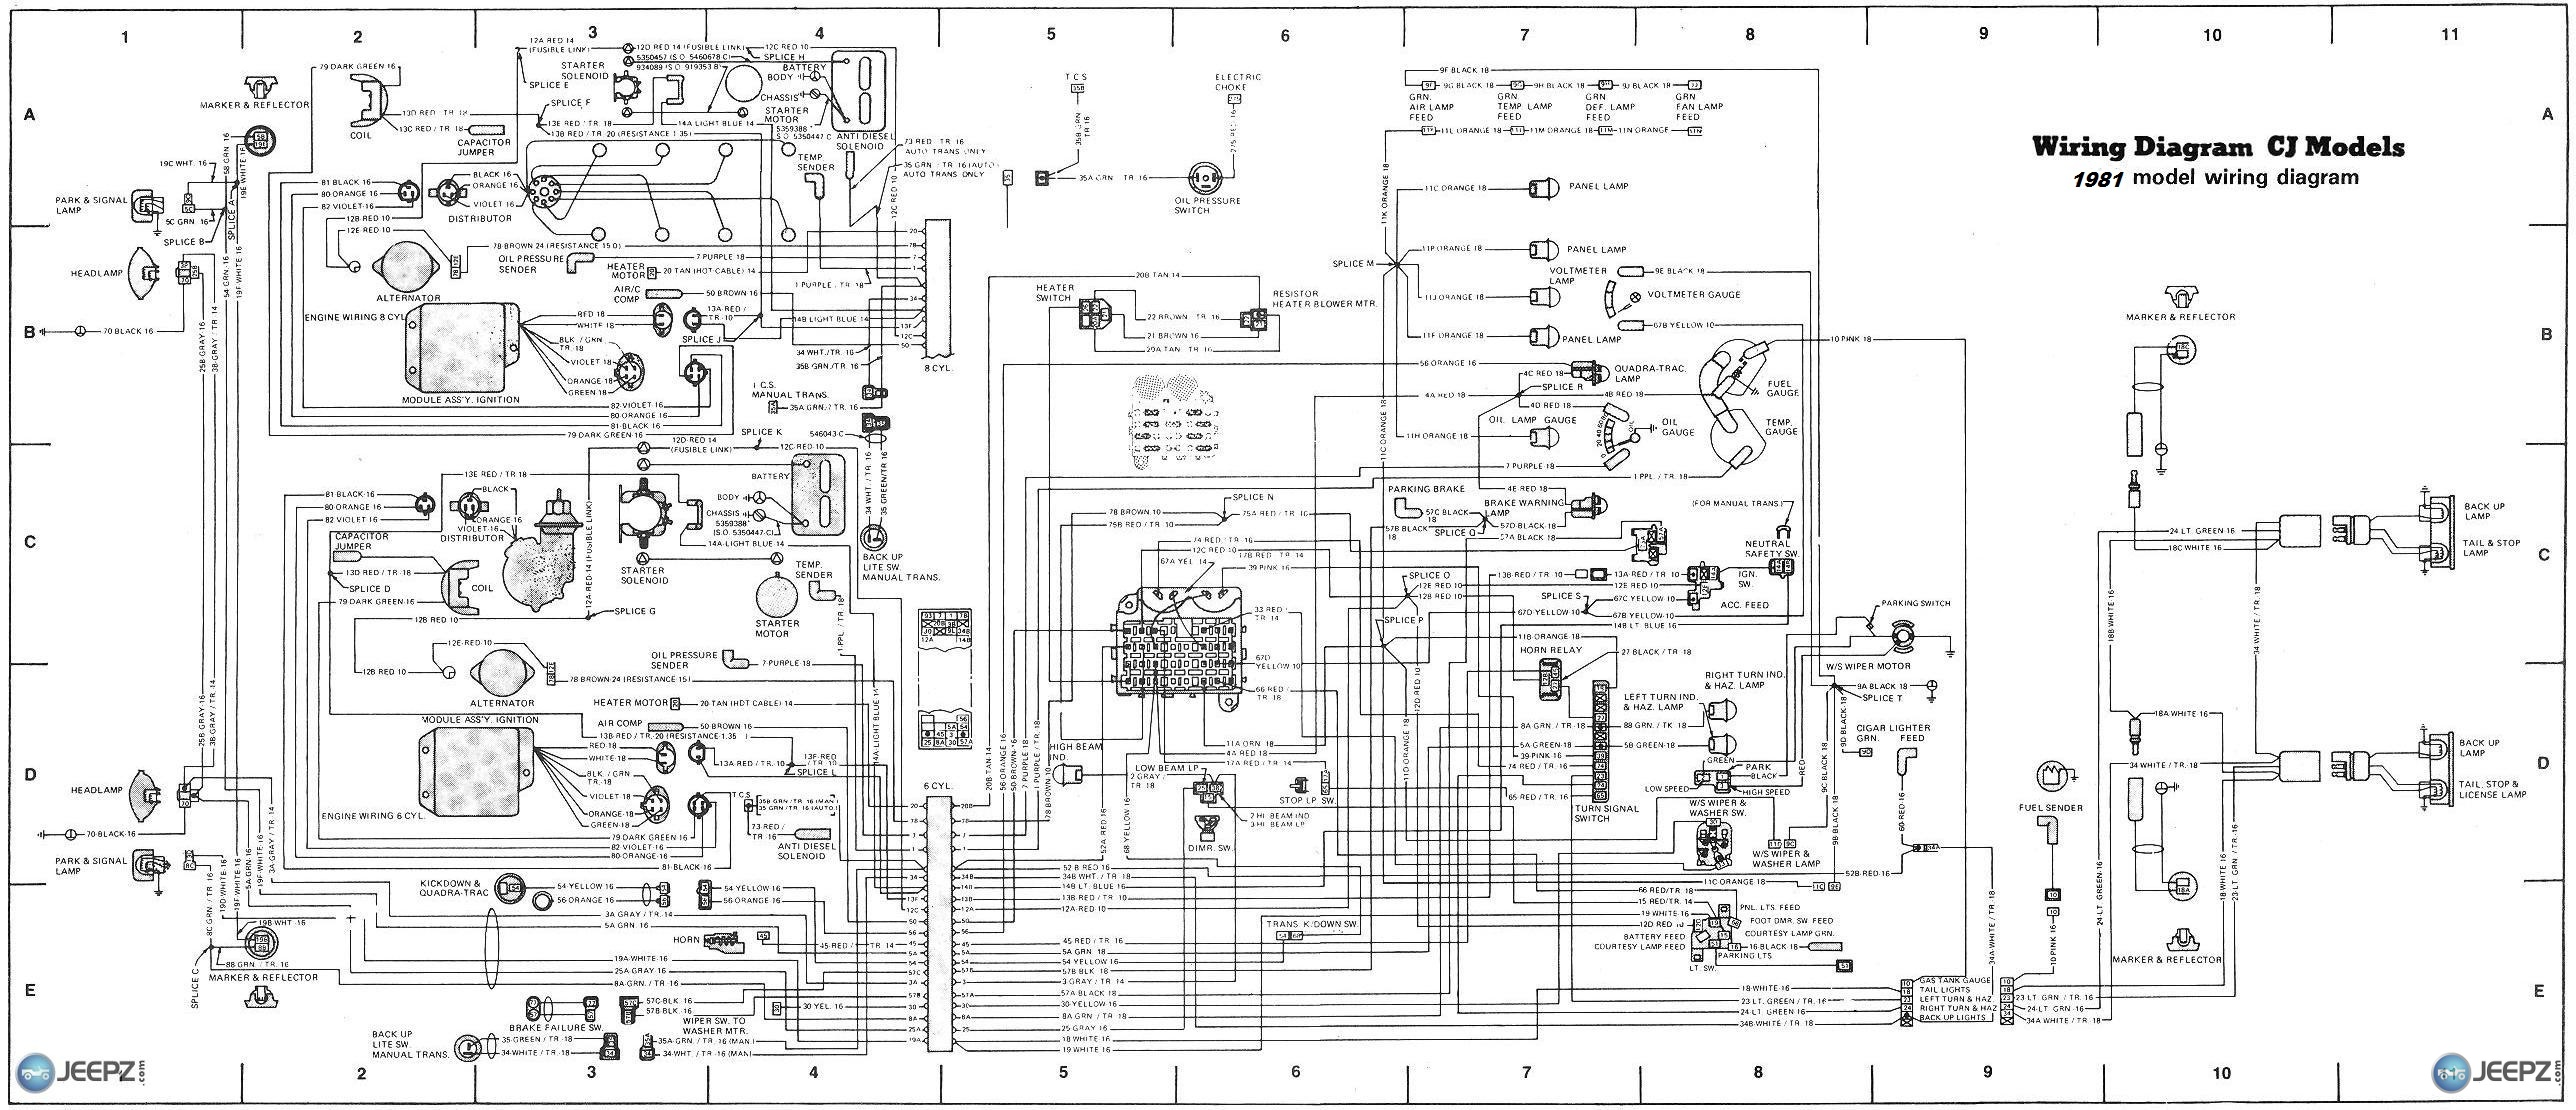 7993d1301845049 cj 7 wire diagram cj wiring diagram 1981 cj 7 wire diagram 1981 jeep cj7 wiring diagram at fashall.co